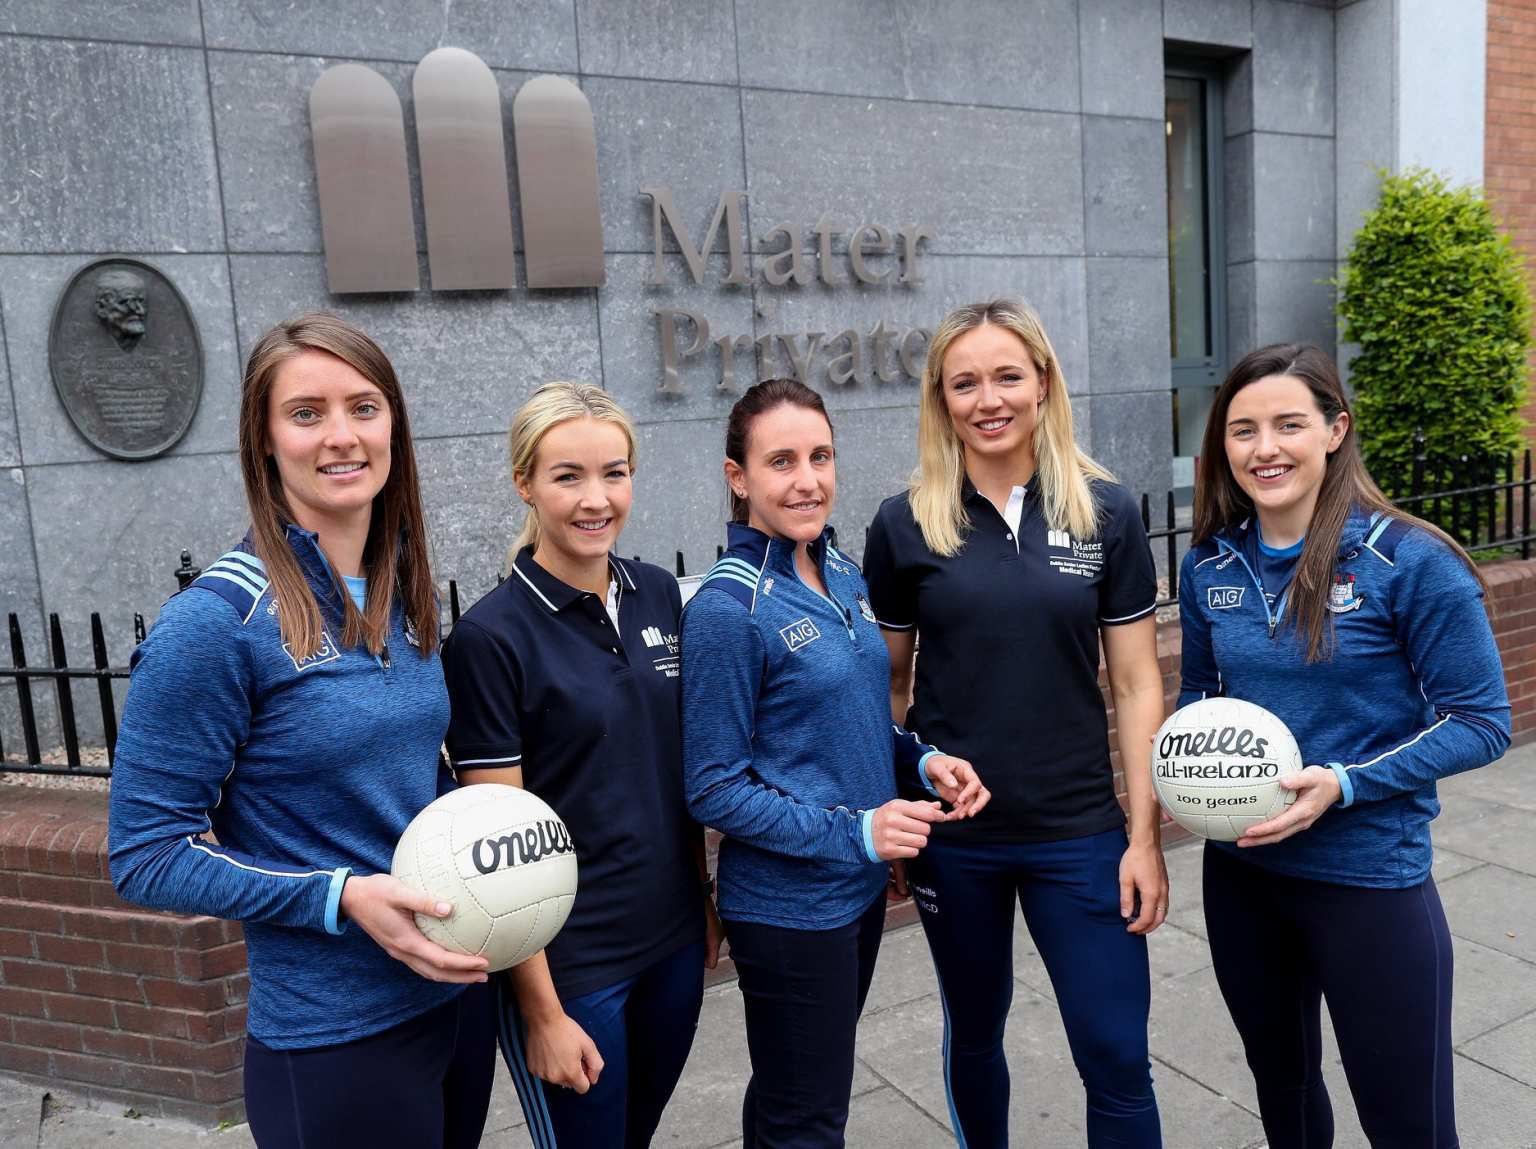 Members of the Dublin ladies football outside the Mater Private Hospital At the Announcement of the Medical support partnership between the Dublin LGFA and The Mater Private Hospital